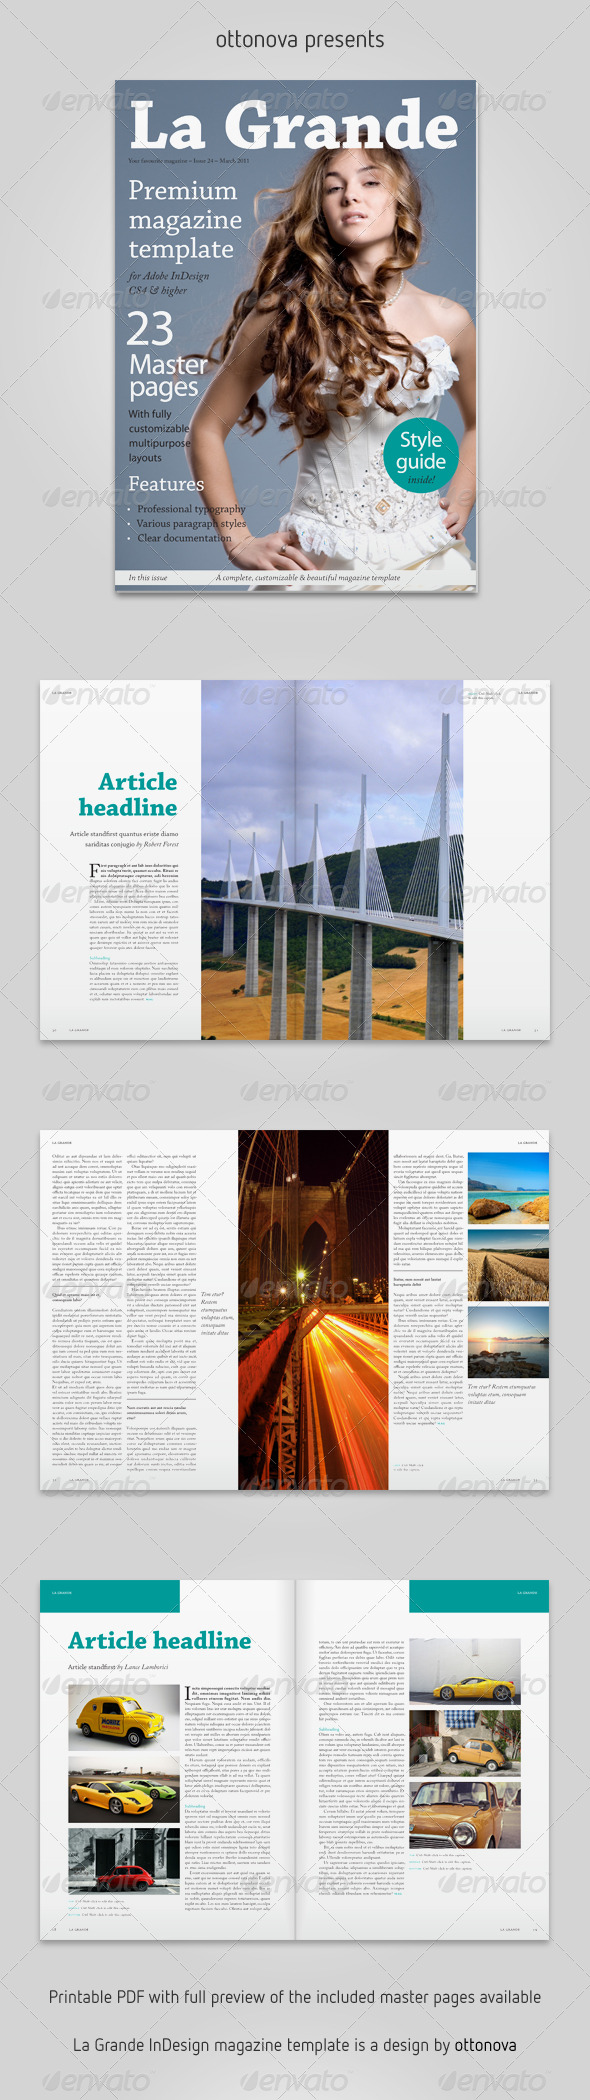 La Grande InDesign magazine template by ottonova | GraphicRiver